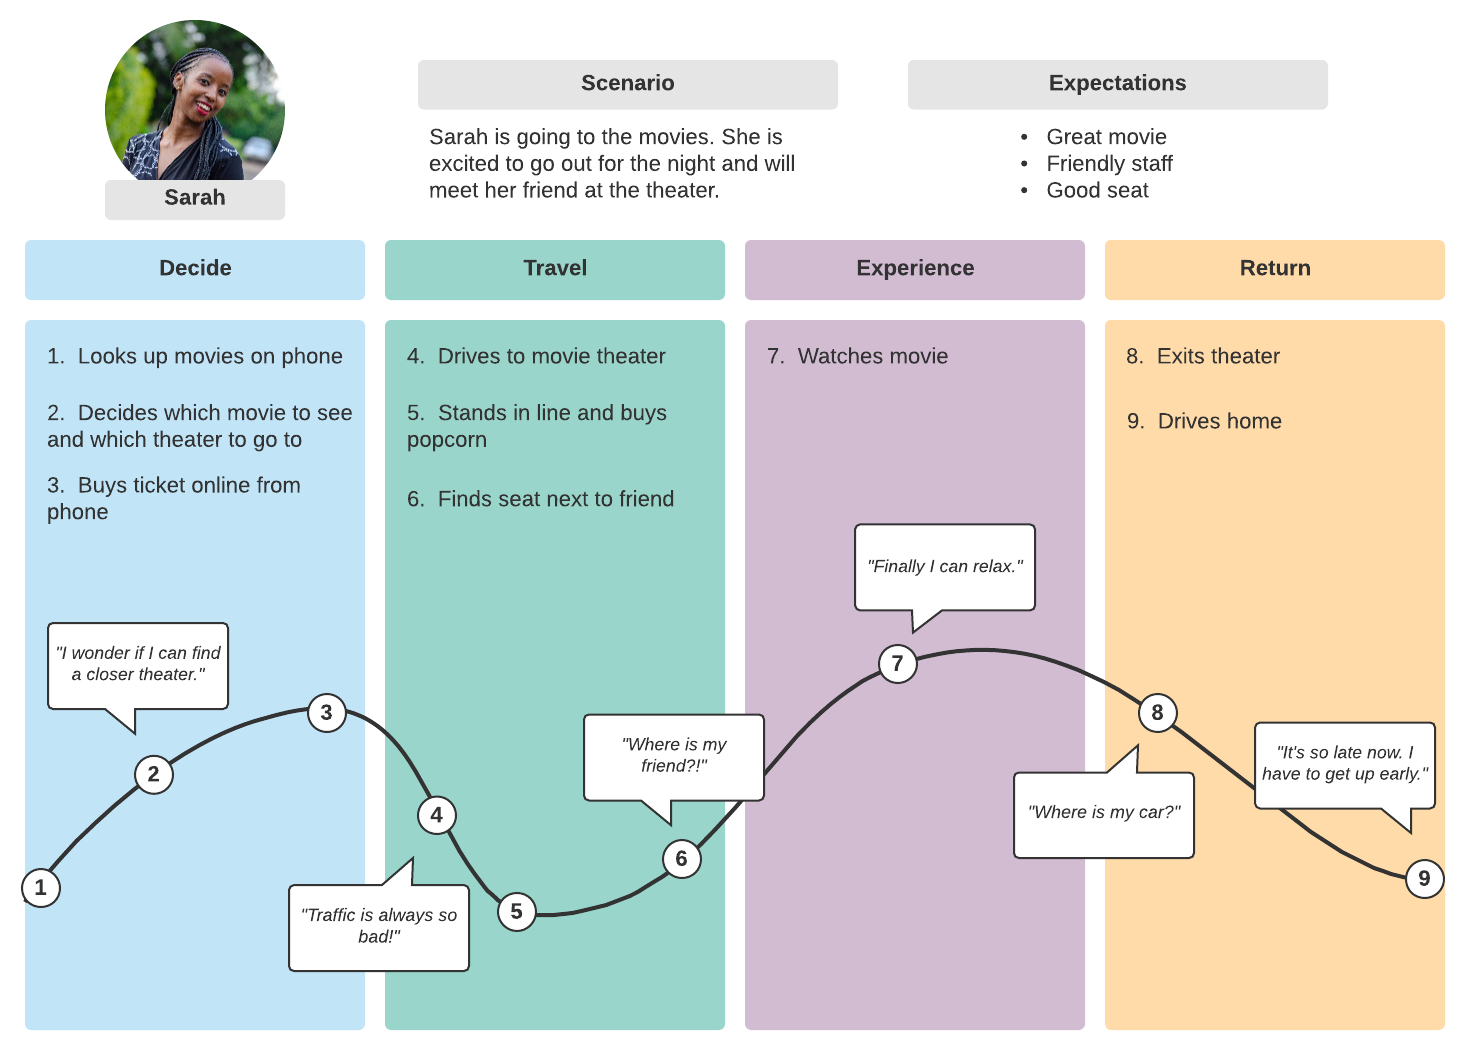 simple customer journey map with persona, scenario, and expectations field